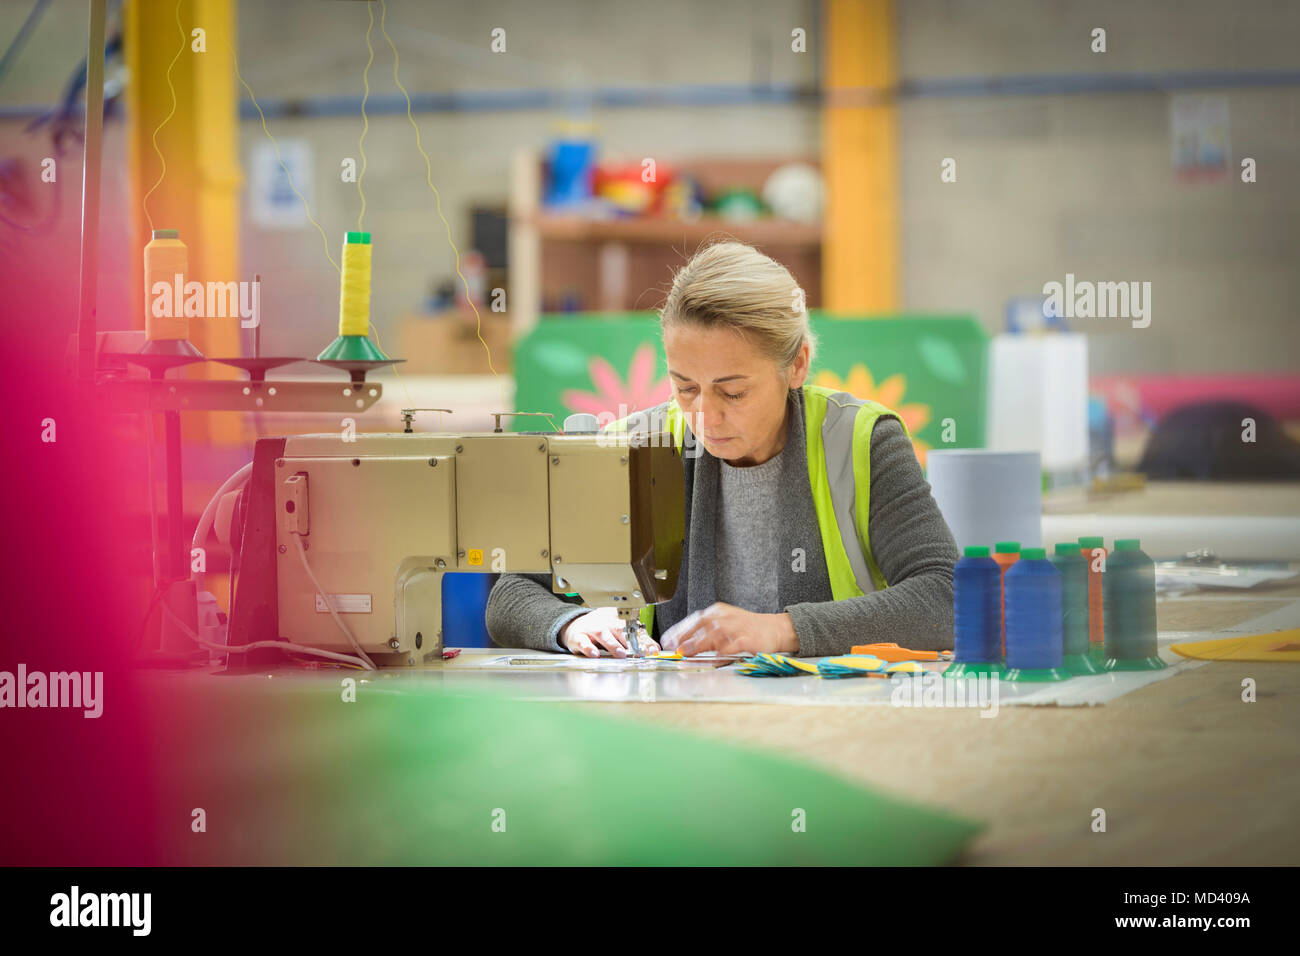 Female worker making cushions with sewing machine in factory - Stock Image